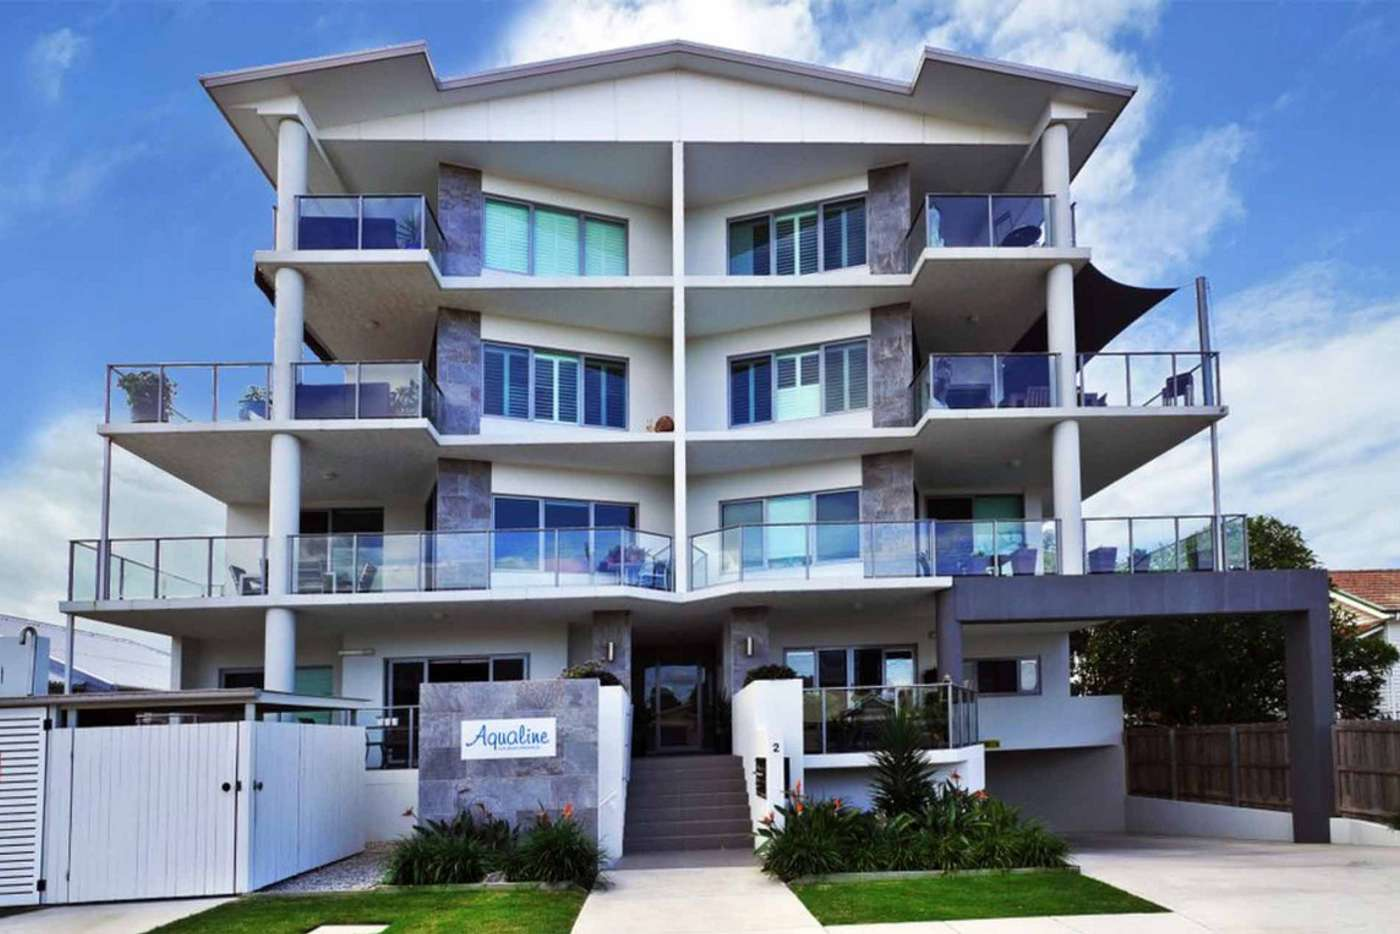 Main view of Homely apartment listing, 8/2 Beaconsfield Street, Margate Beach QLD 4019